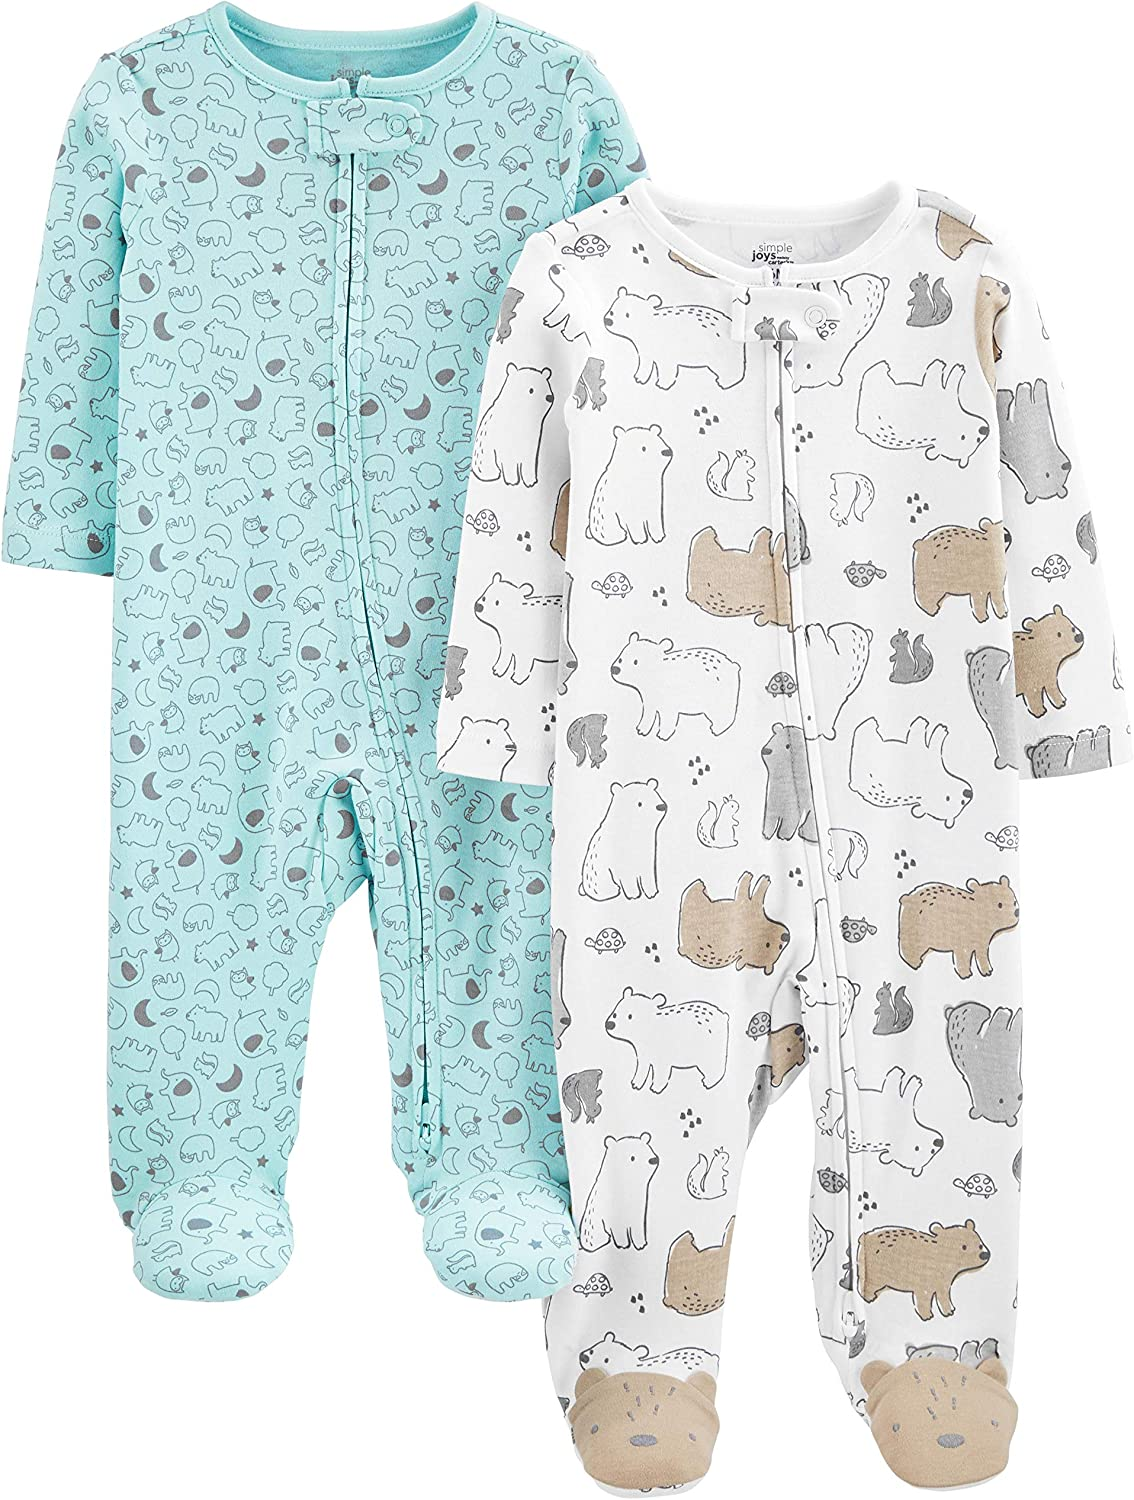 Simple Joys by Carters Baby-Girls Neutral 2-Pack Cotton Footed Sleep and Play Baby and Toddler Sleepers